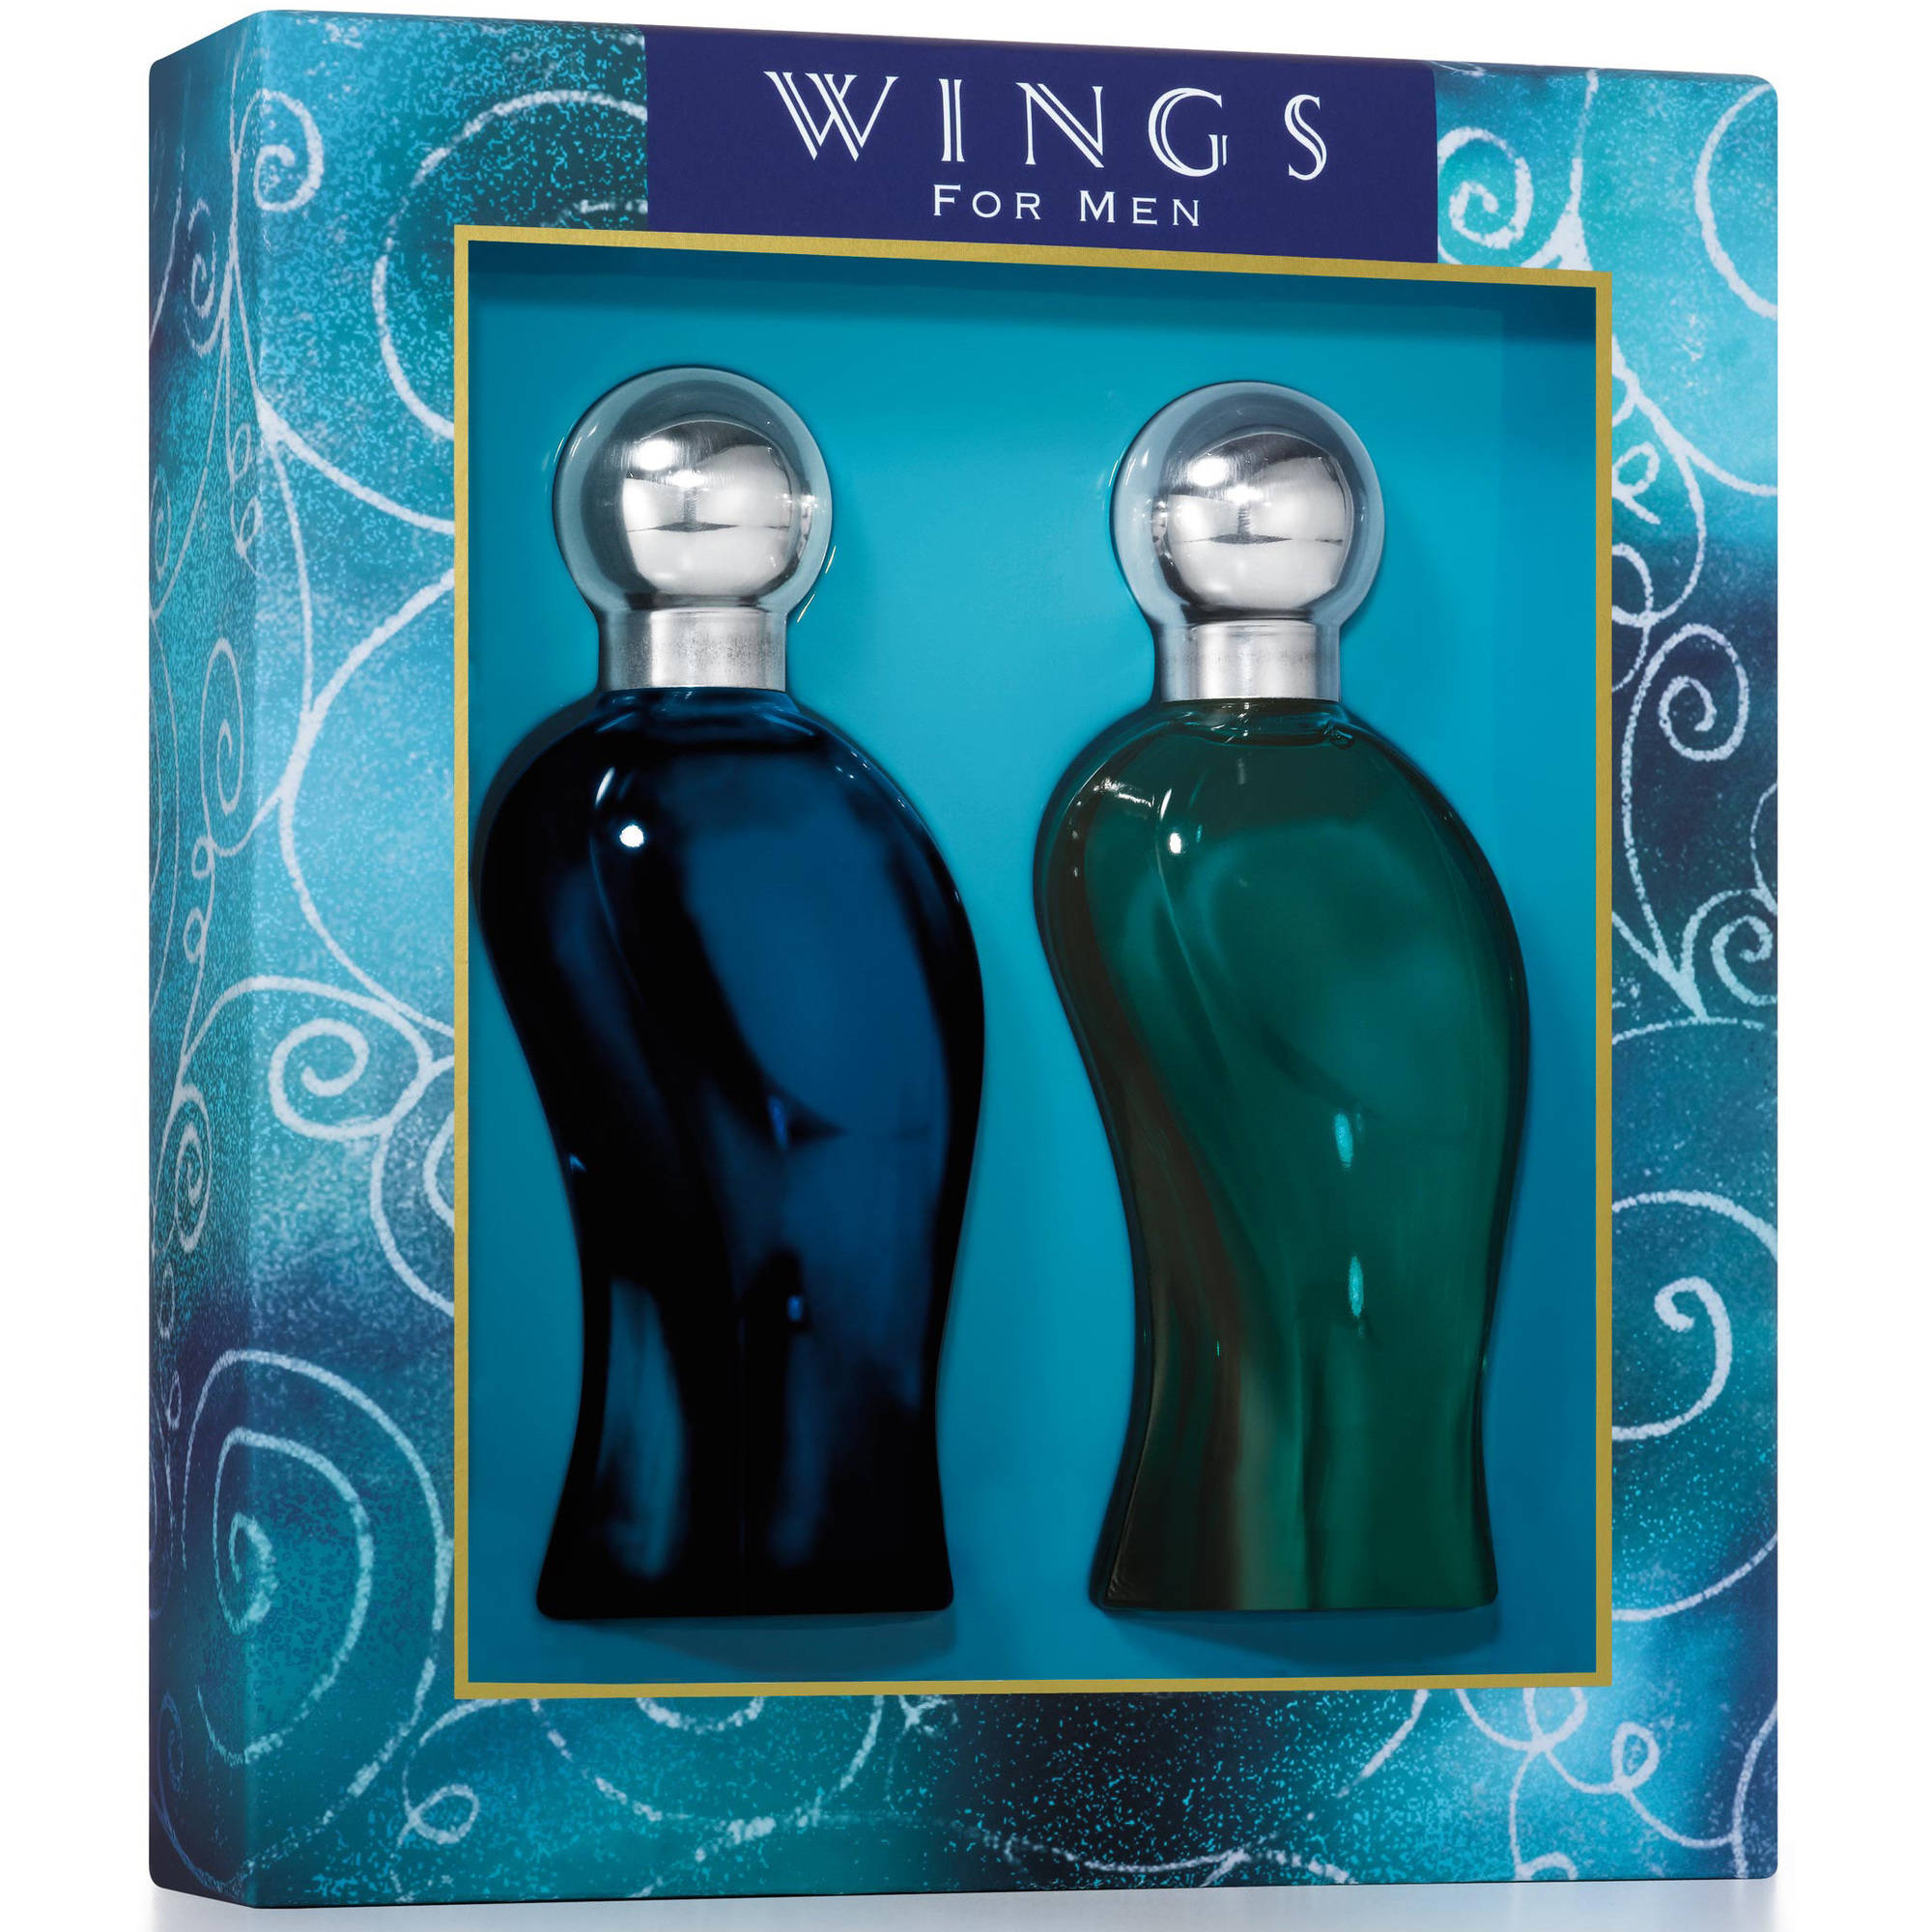 Wings by Giorgio Beverly Hills for Men - 2 pc Gift Set 3.4oz edt Spray, 3.4oz after shave